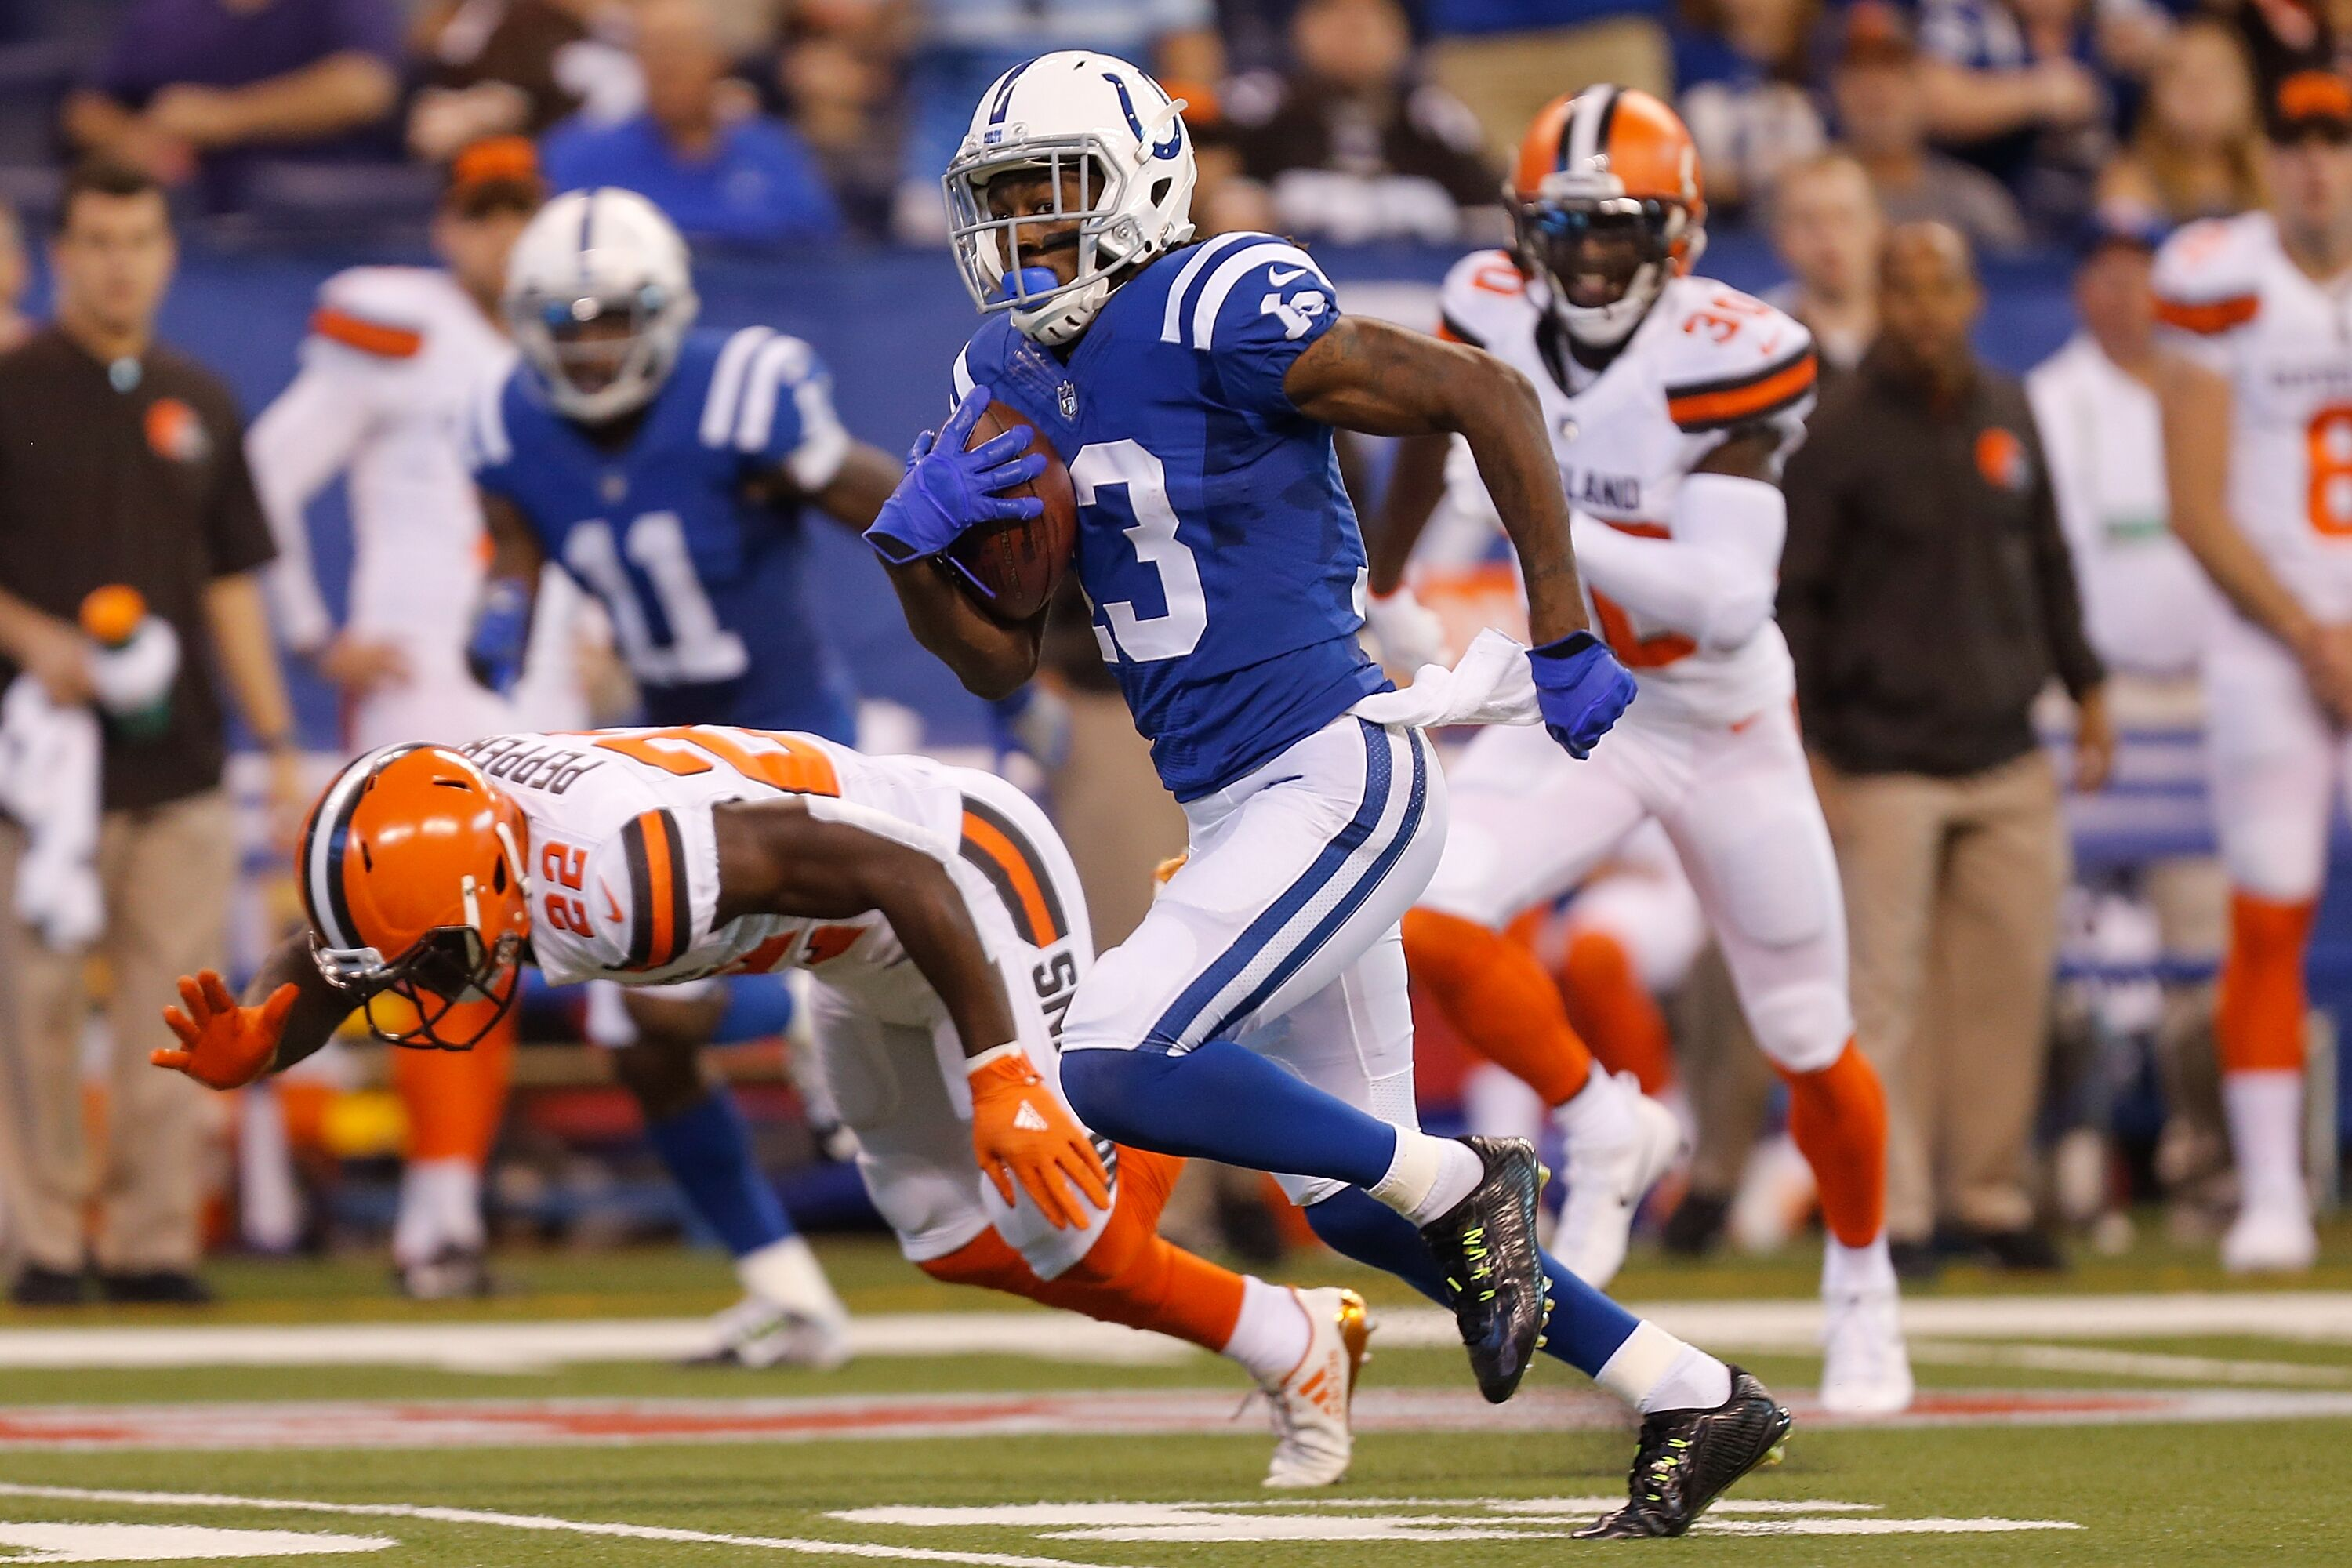 464de22d Browns at Colts: Highlights, score and recap